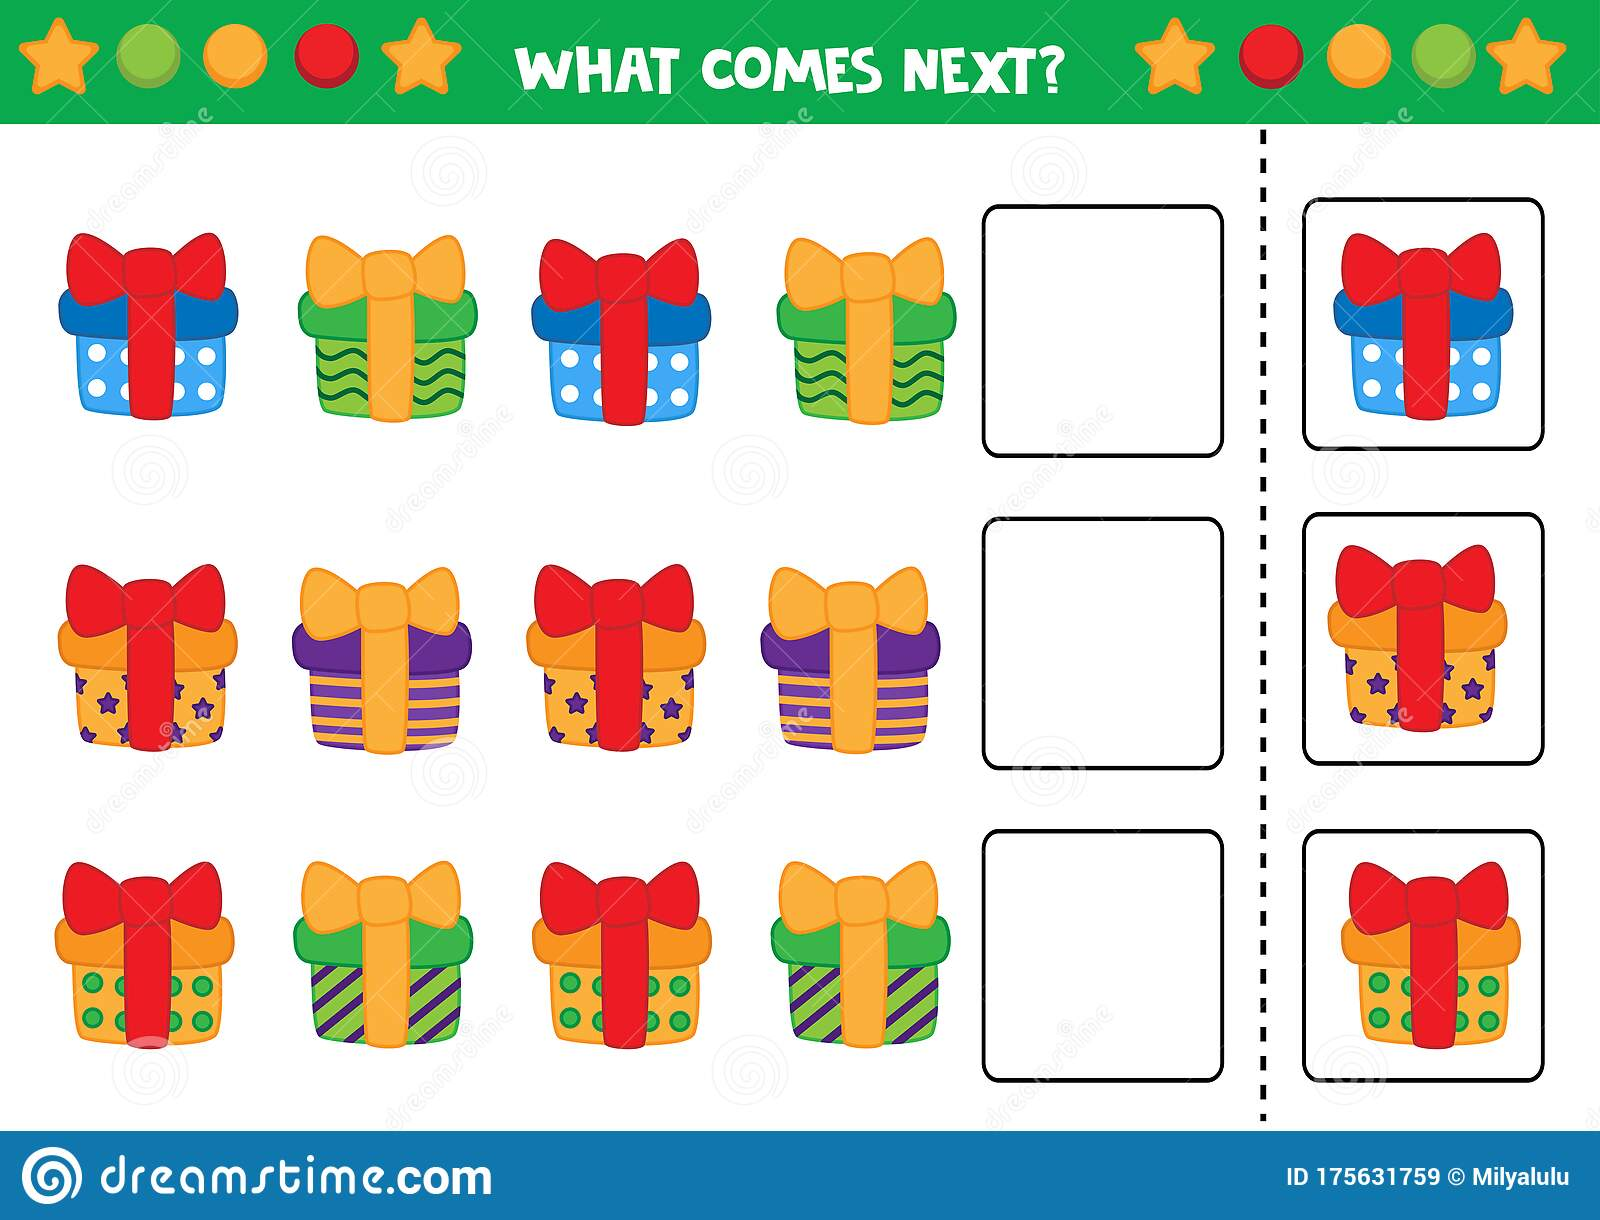 Educational Worksheet For Preschool Kids What Comes Next